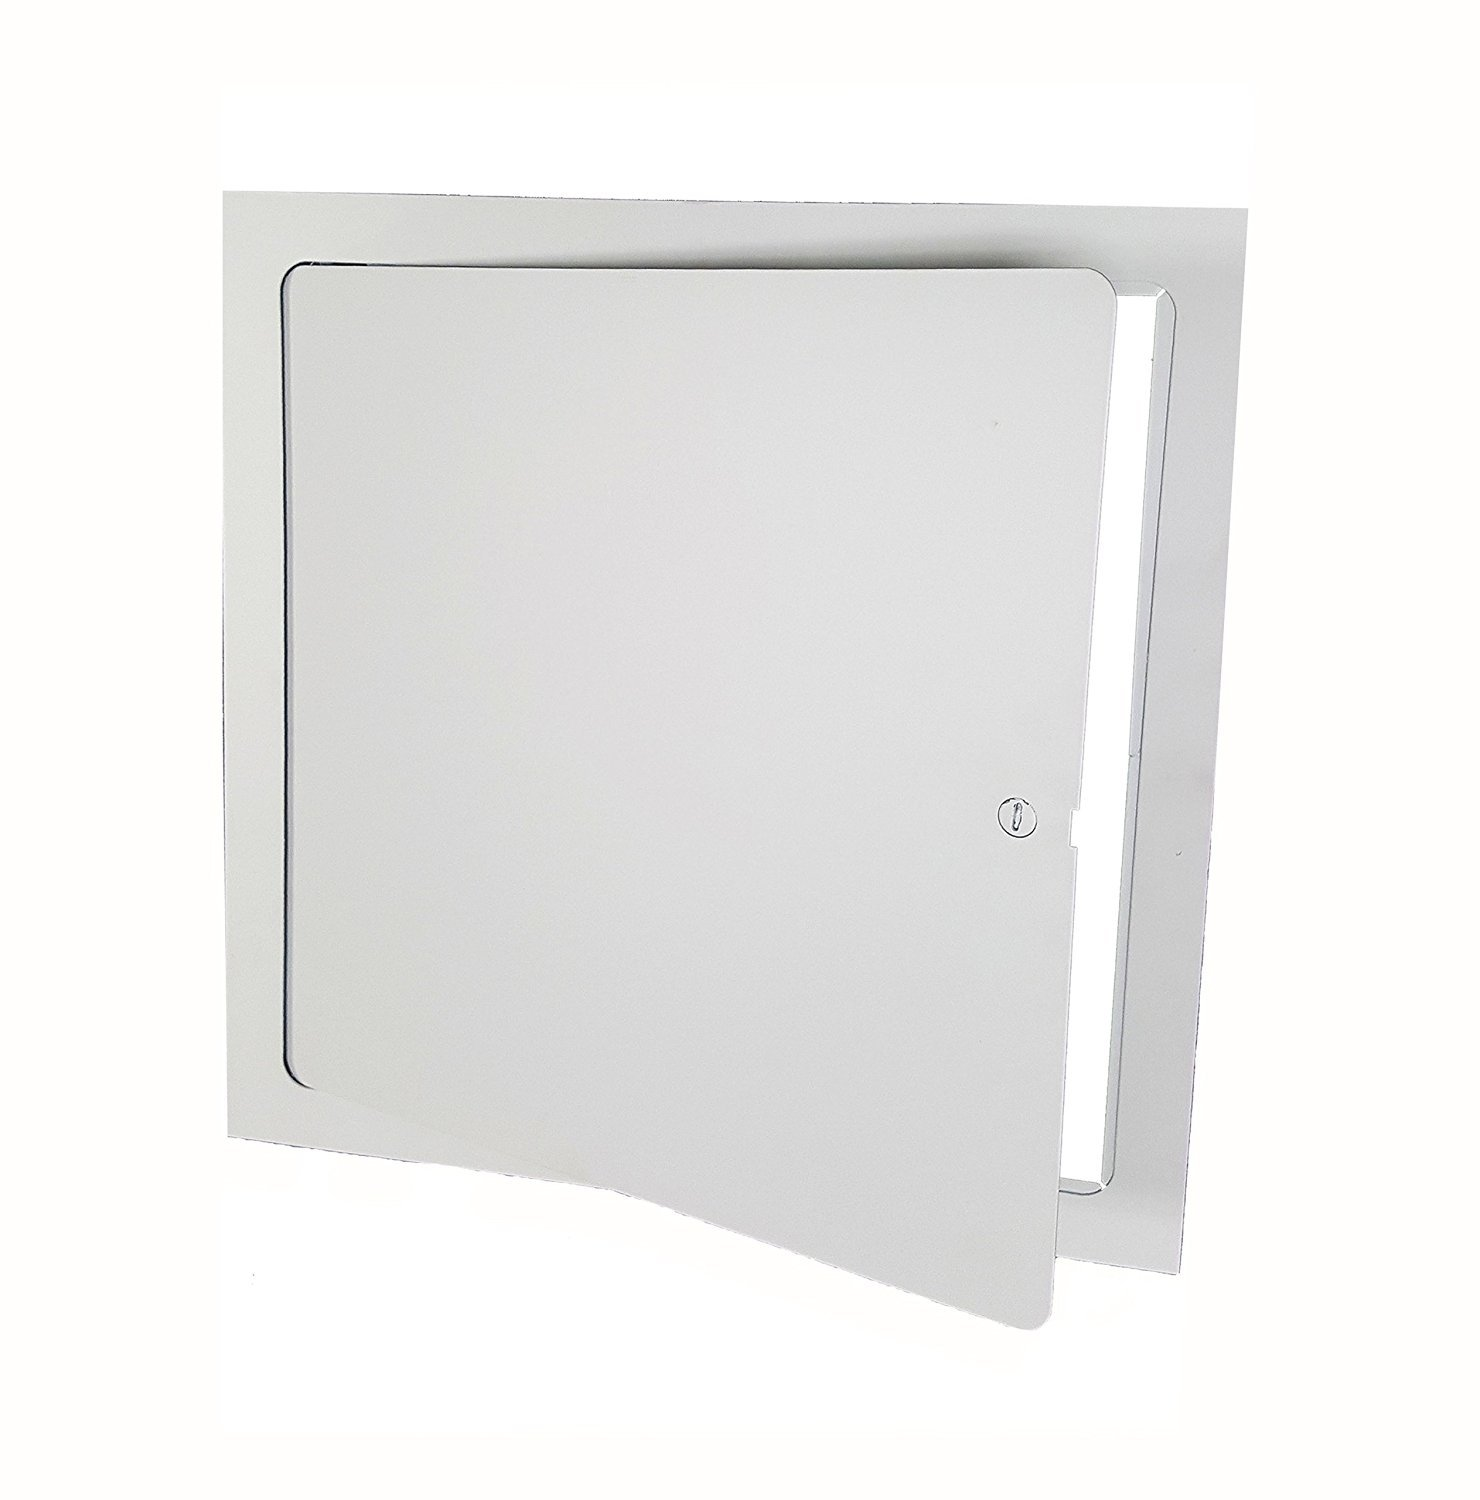 Premier FL-14 x 14 Flush Access Door, Steel, Powder Coated White by Premier Access Doors